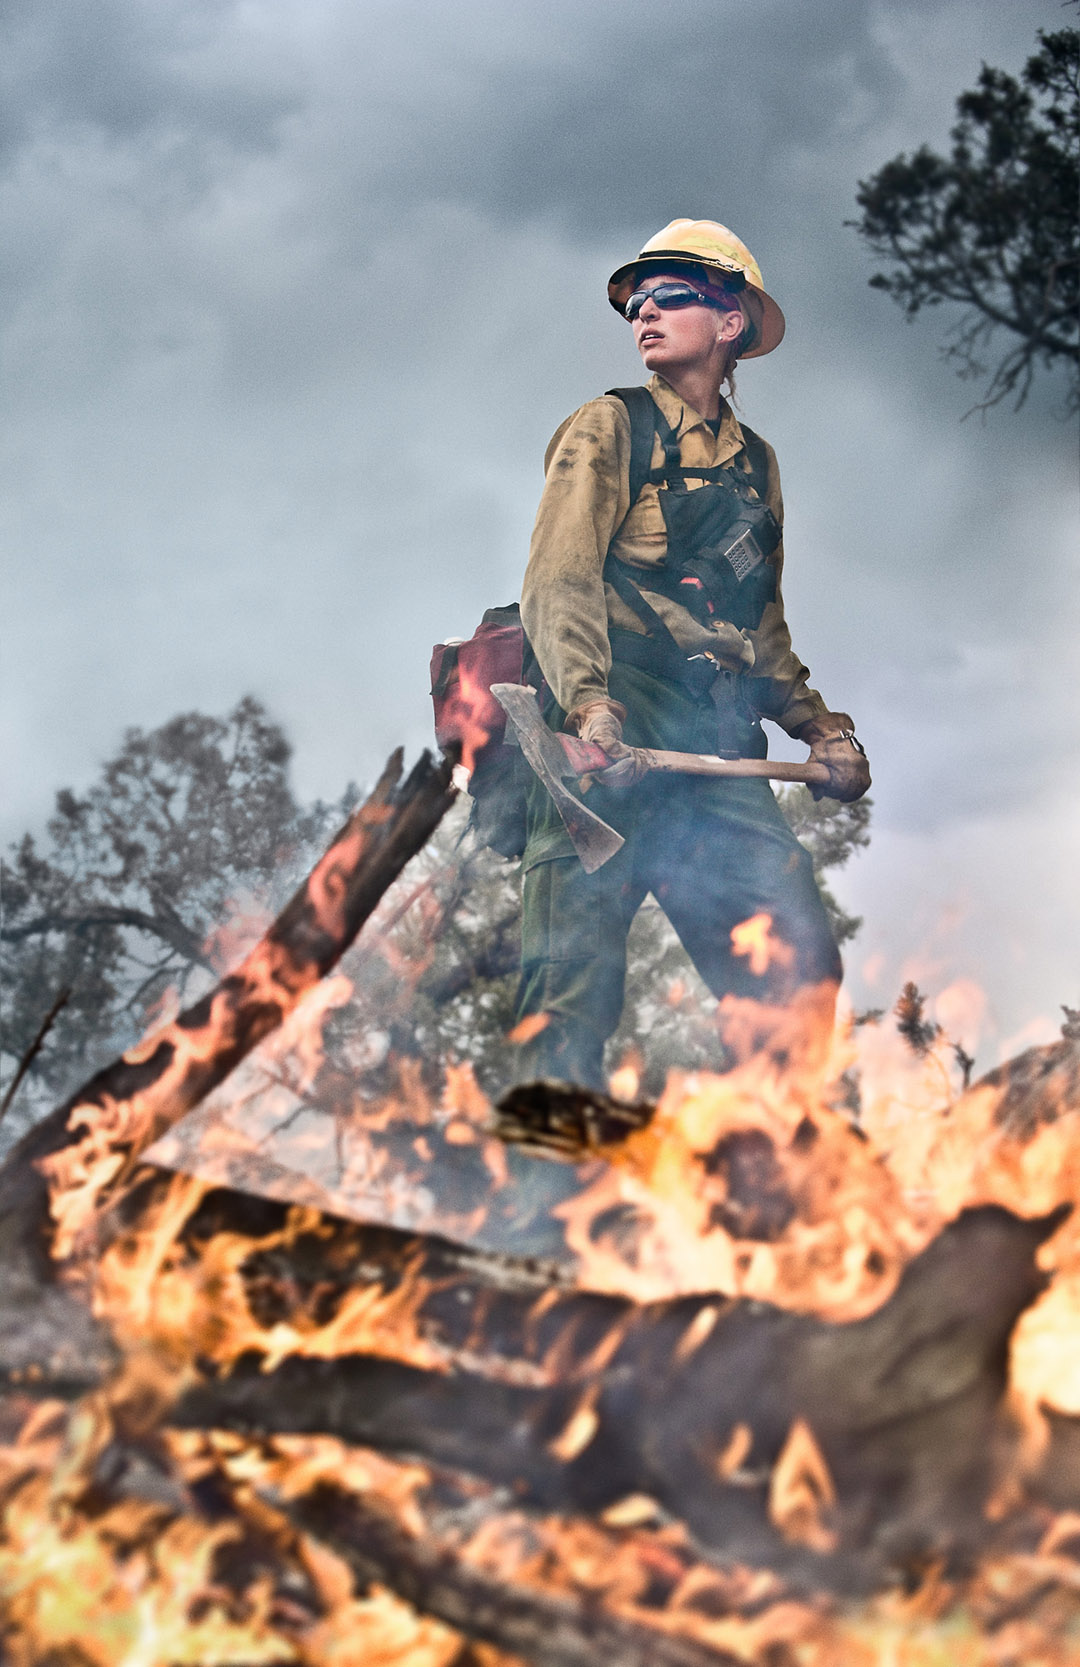 This Powerful Image Shows a Young Firefighter Digging a Trench Near a Wildfire in the Mountains of Colorado.